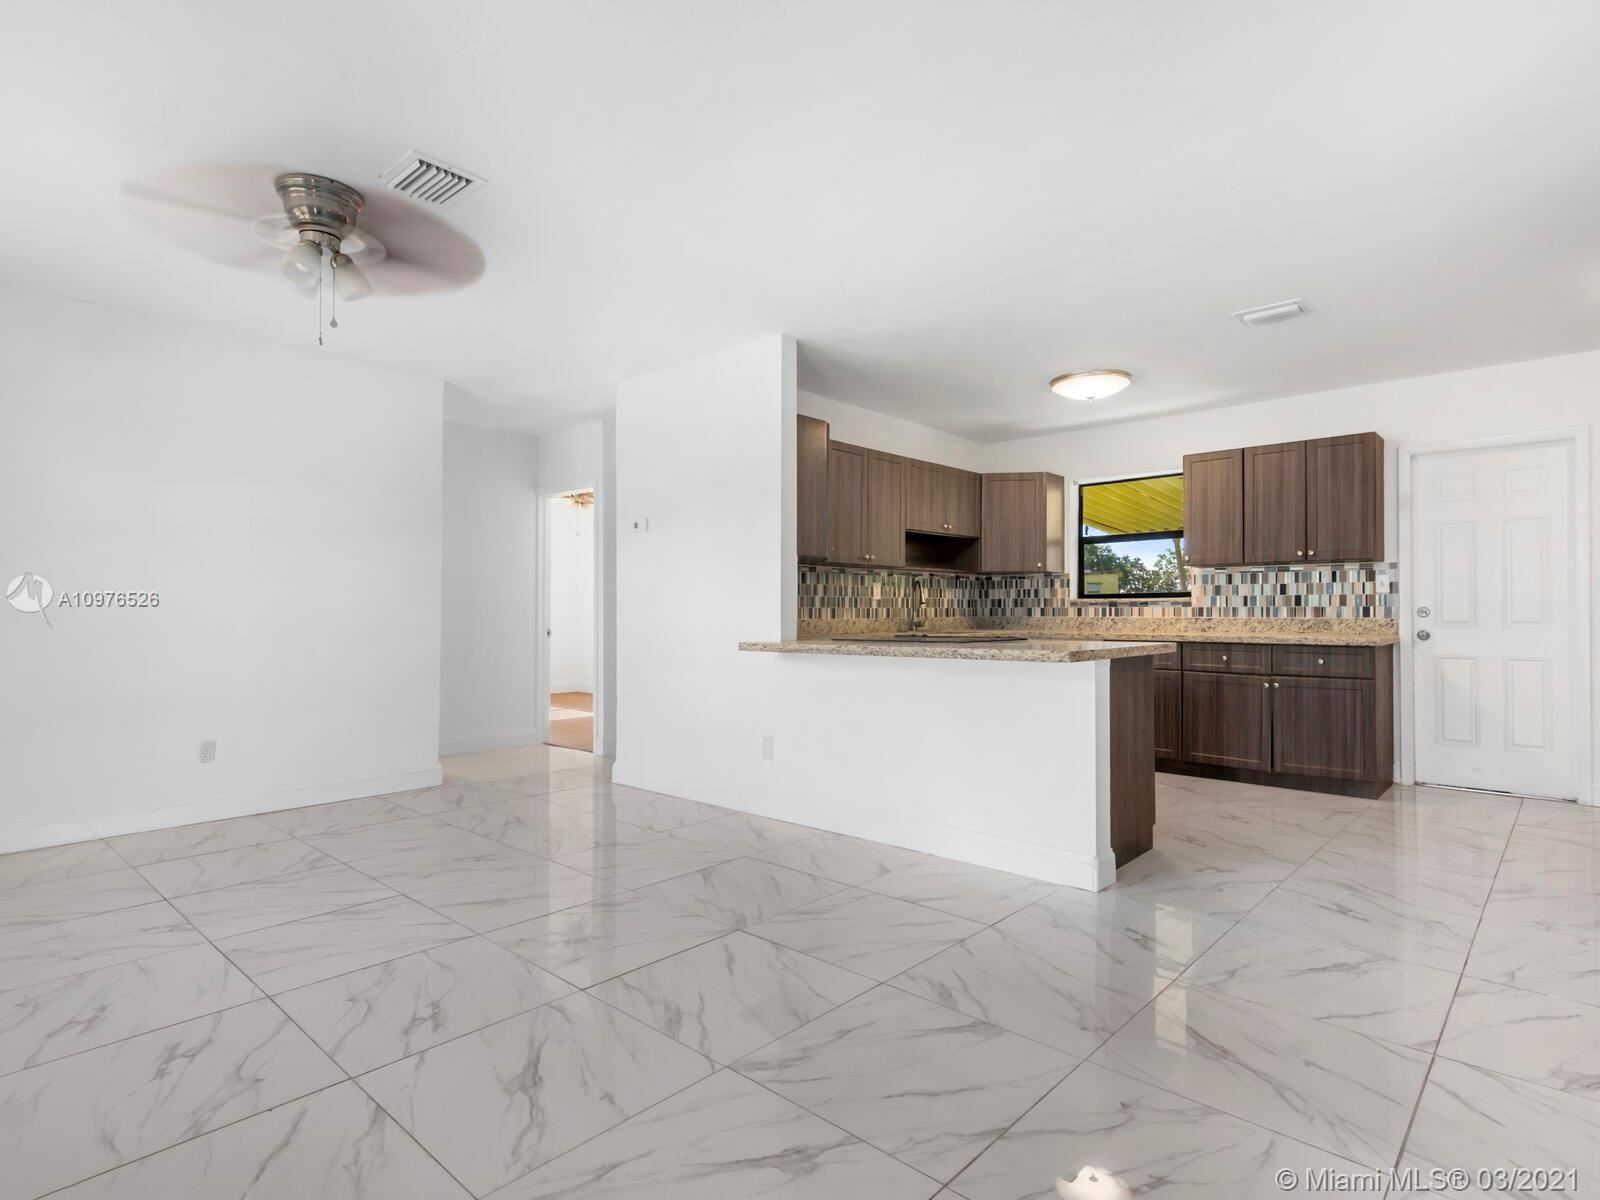 4031 NW 8th Ter, Oakland Park, FL 33309 - #: A10976526